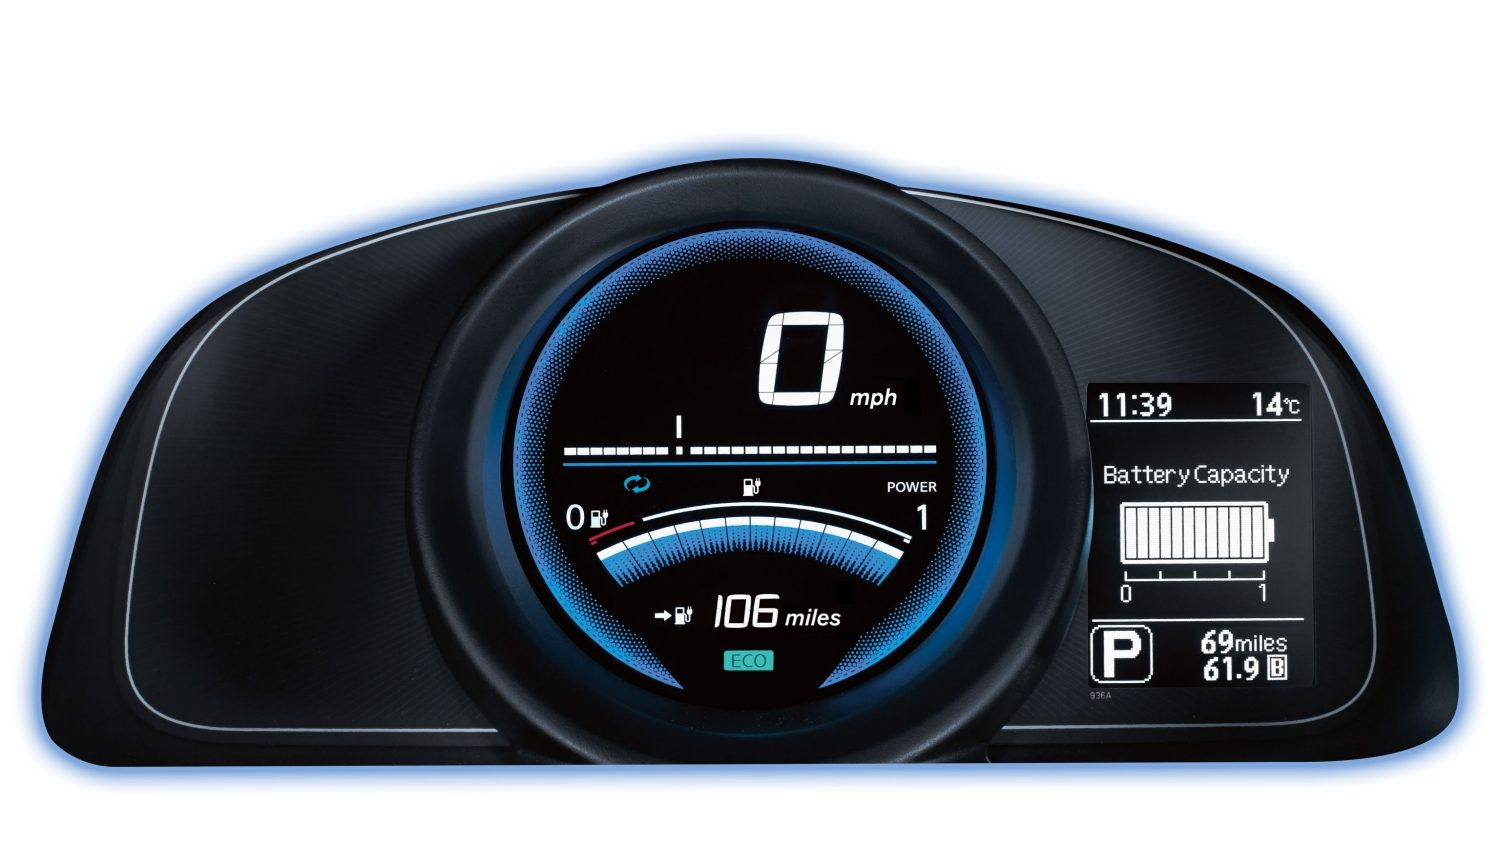 Van | Nissan e-NV200 | Instrument panel